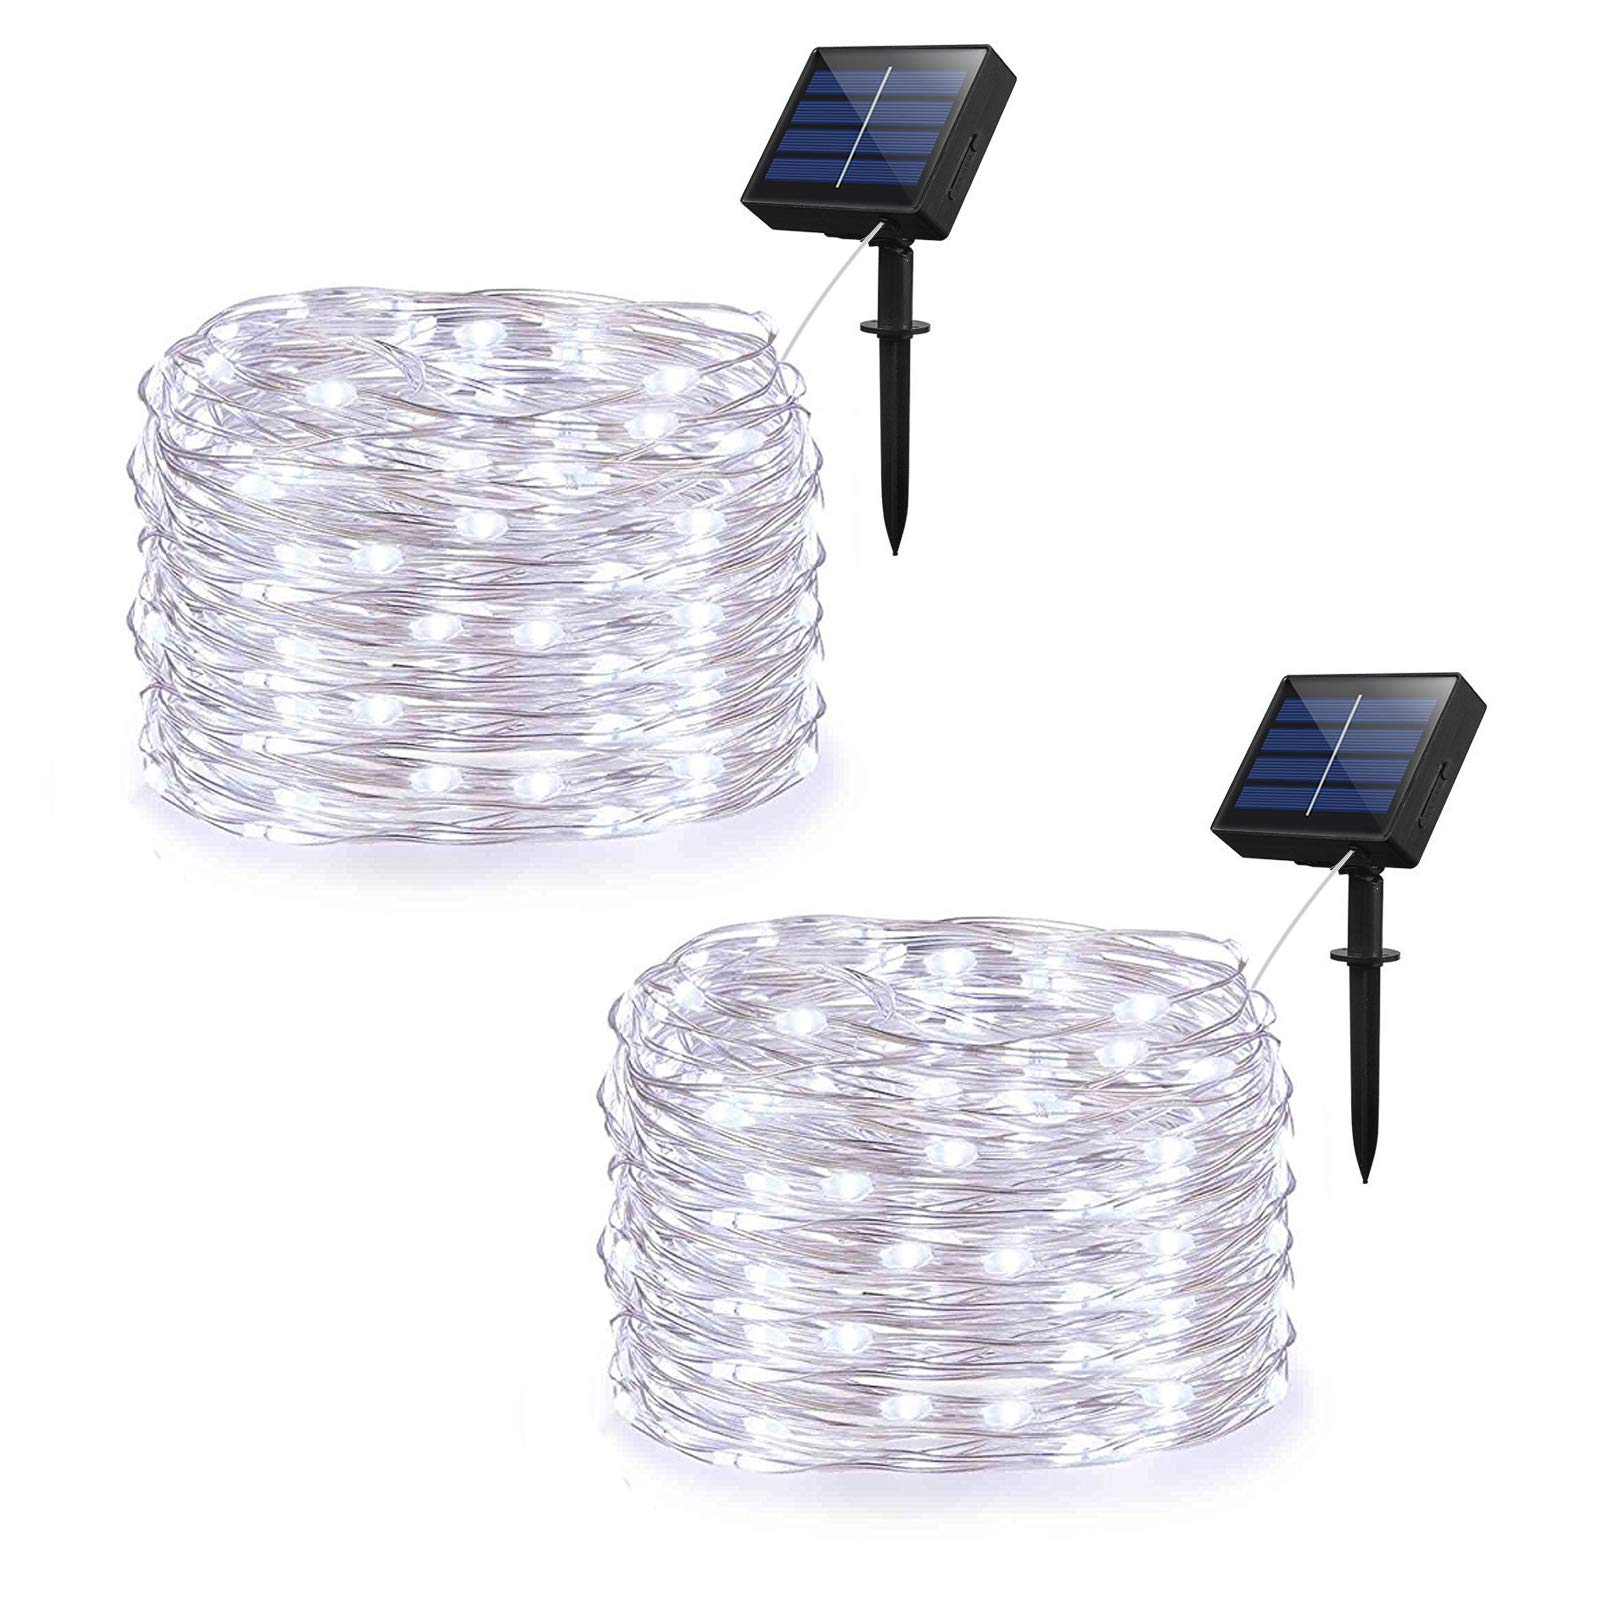 Adecorty Solar String Lights, Outdoor Starry Fairy String lights with 100 LEDs 33ft Silver Copper Wire 8 Mode Waterproof for Wedding Garden Home Birthday Party Patio Lawn Trees (Cold White 2 Pack) by Adecorty